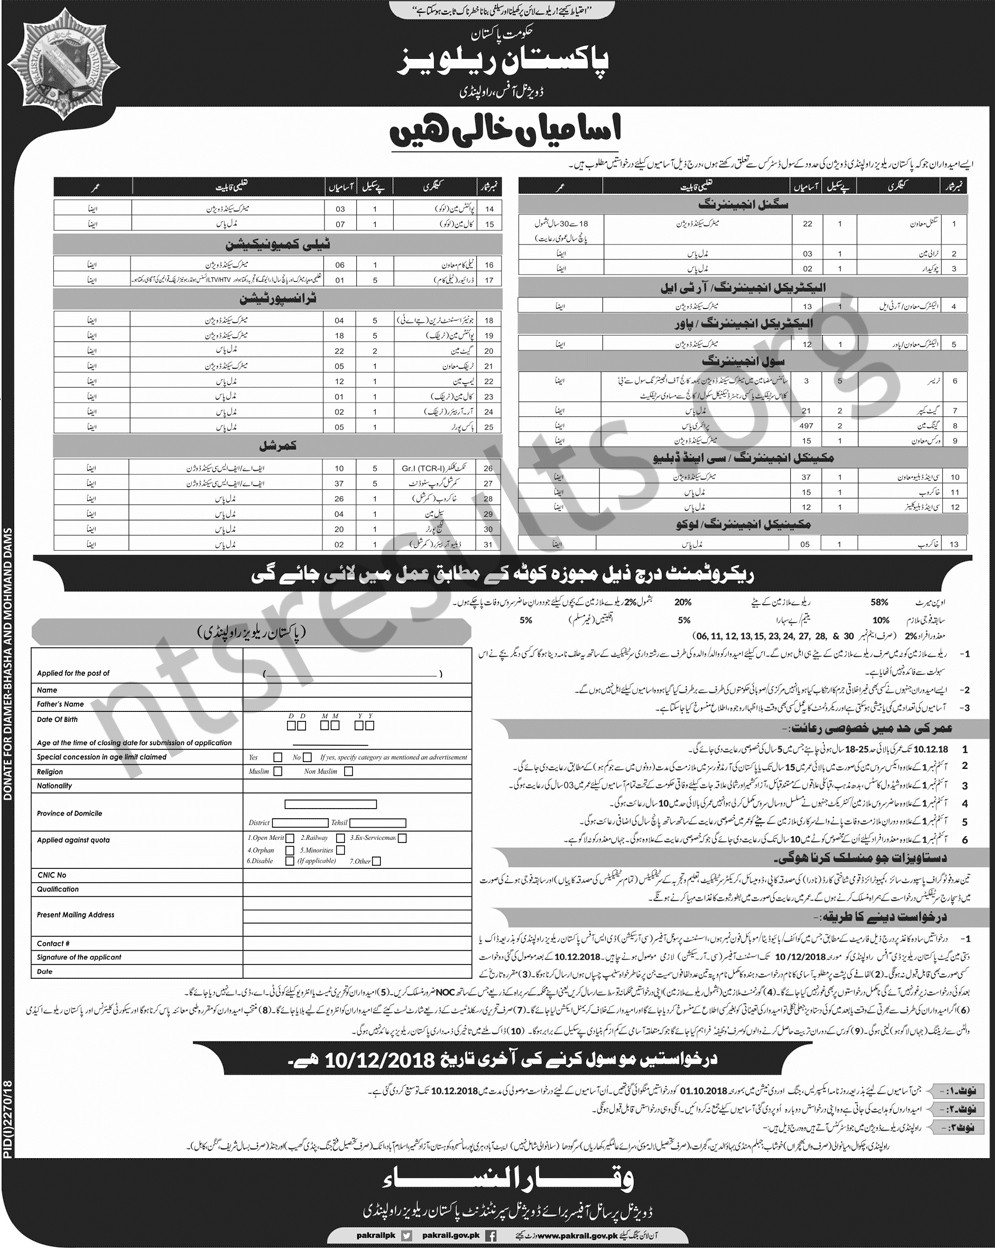 Pakistan Railway Jobs 2019 Download Application Form online